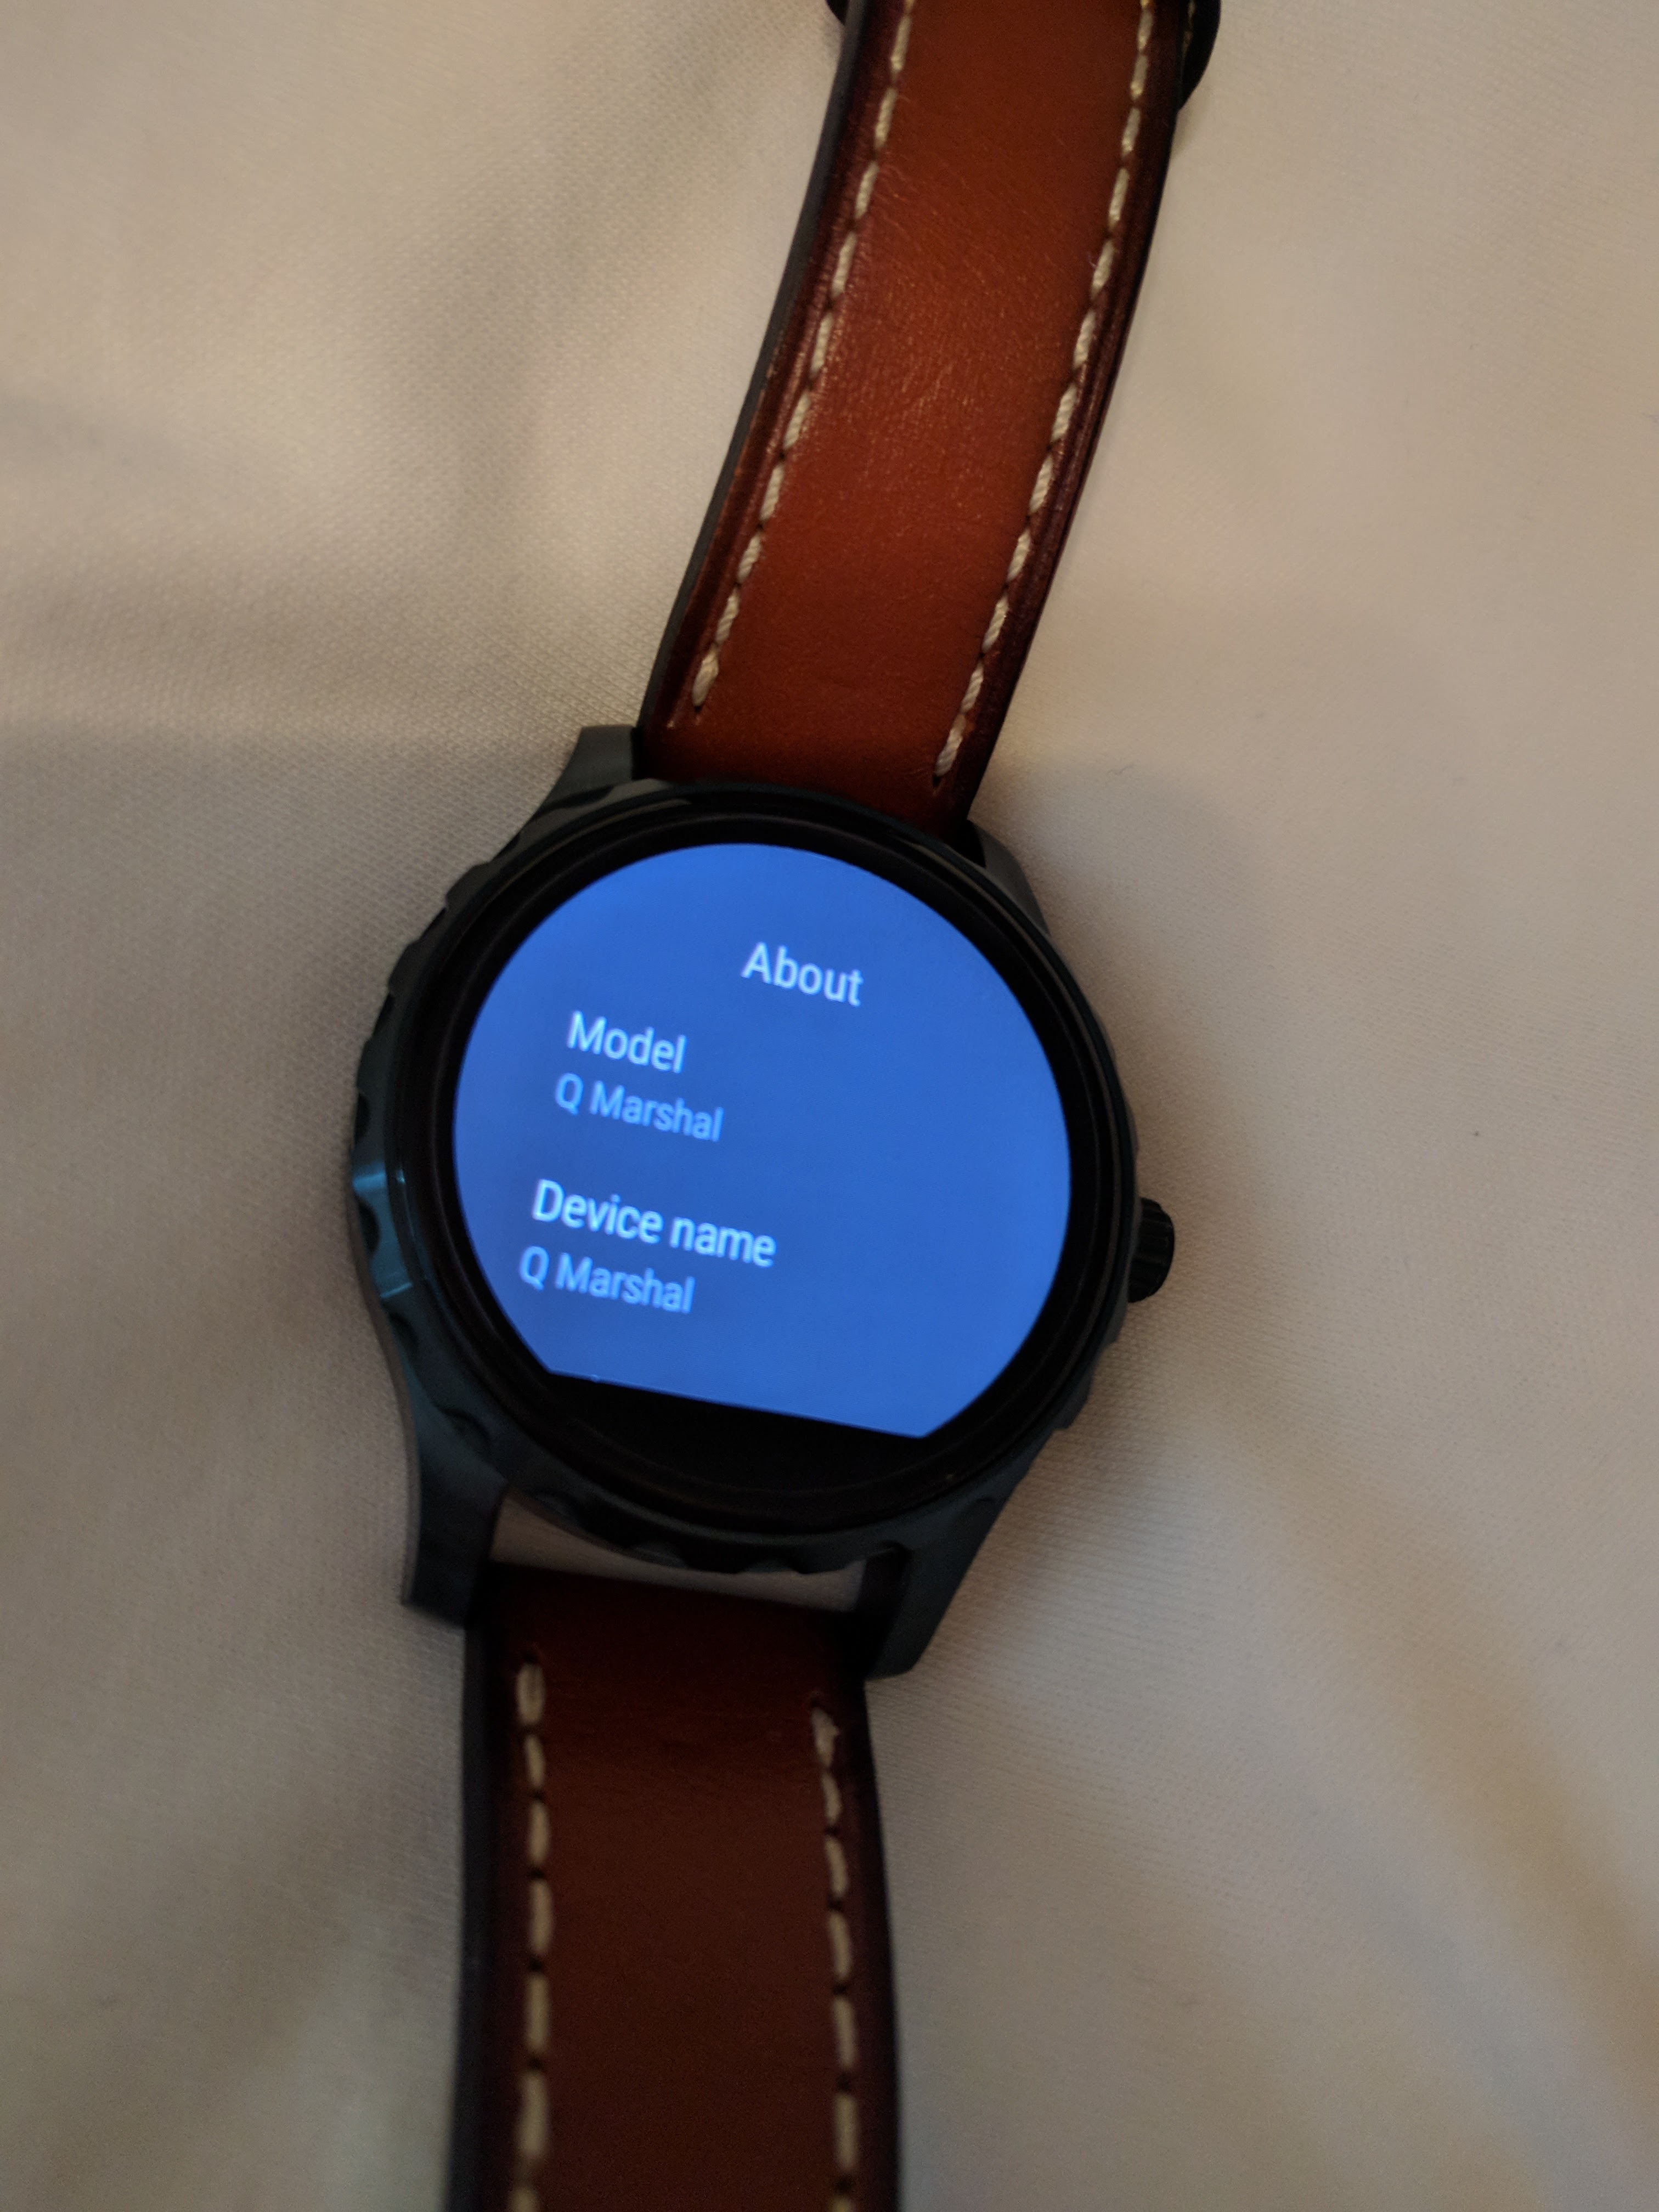 Fossil Q Wander (Smart Watch) Mint Condition: Blue watch and Brown leather Fossil Q Wander (Smart Watch) Android Wear 2.0